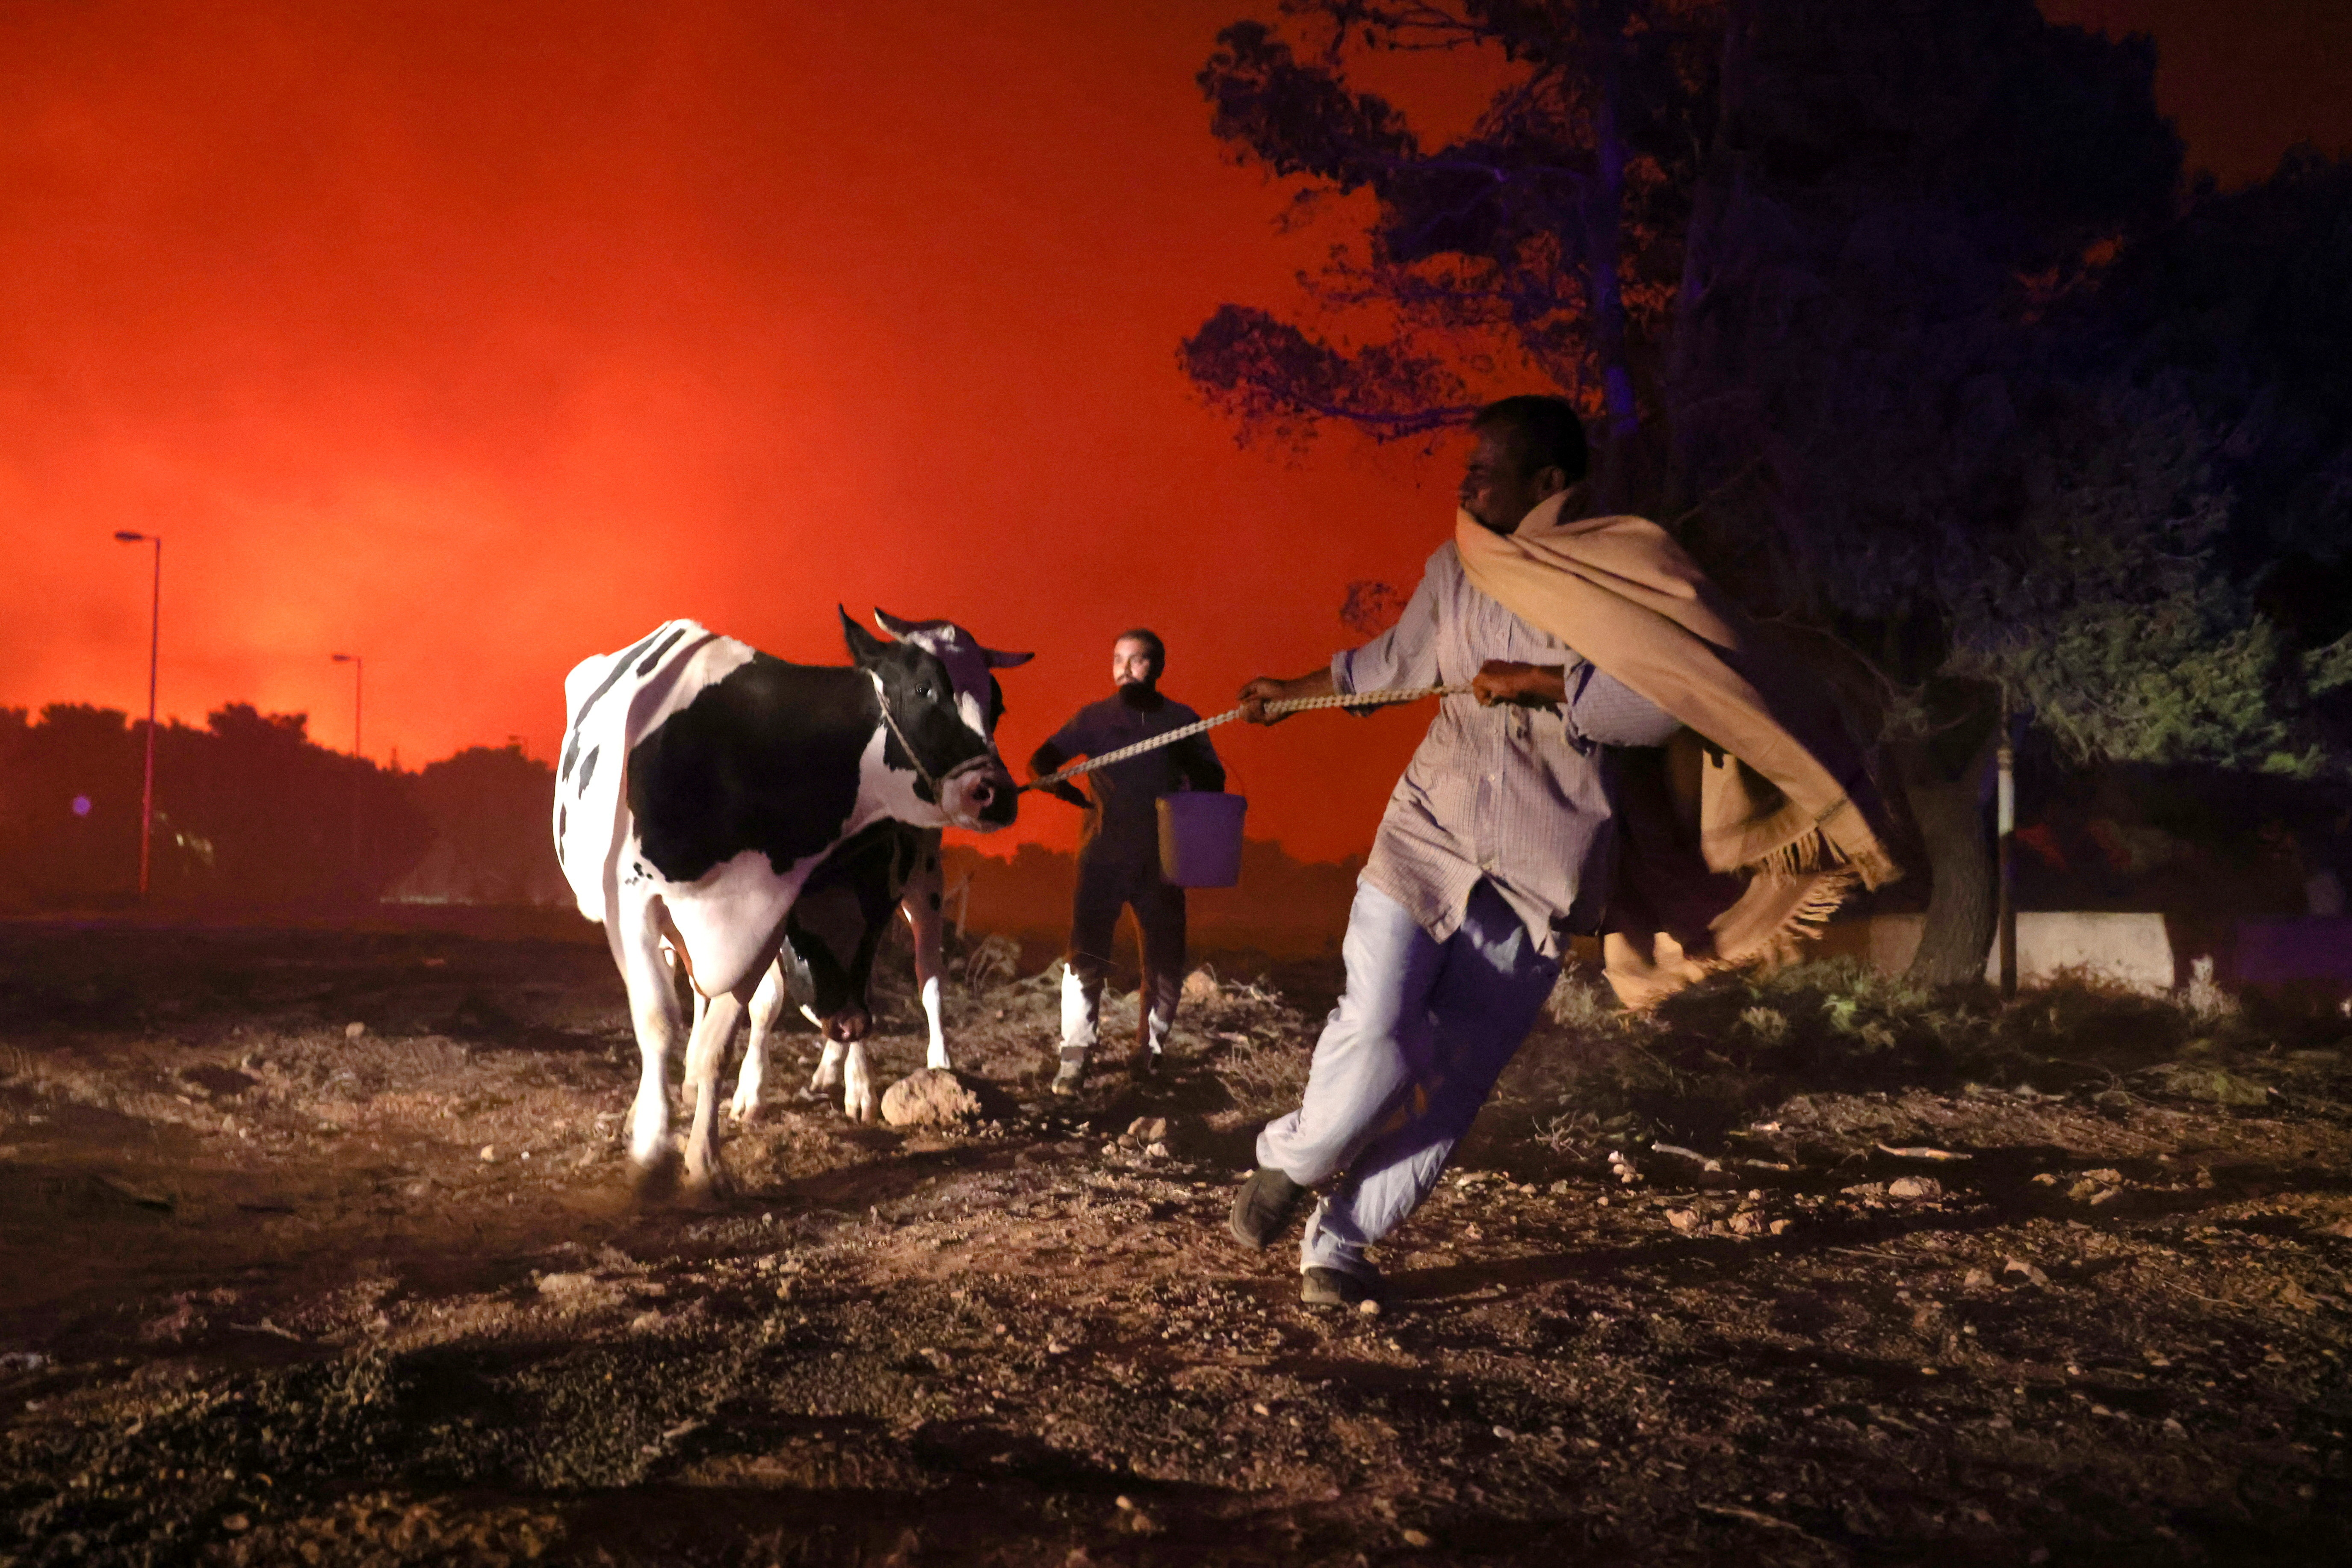 Locals evacuate the area with their animals as a wildfire rages in the suburb of Thrakomakedones, north of Athens, Greece, August 7, 2021.